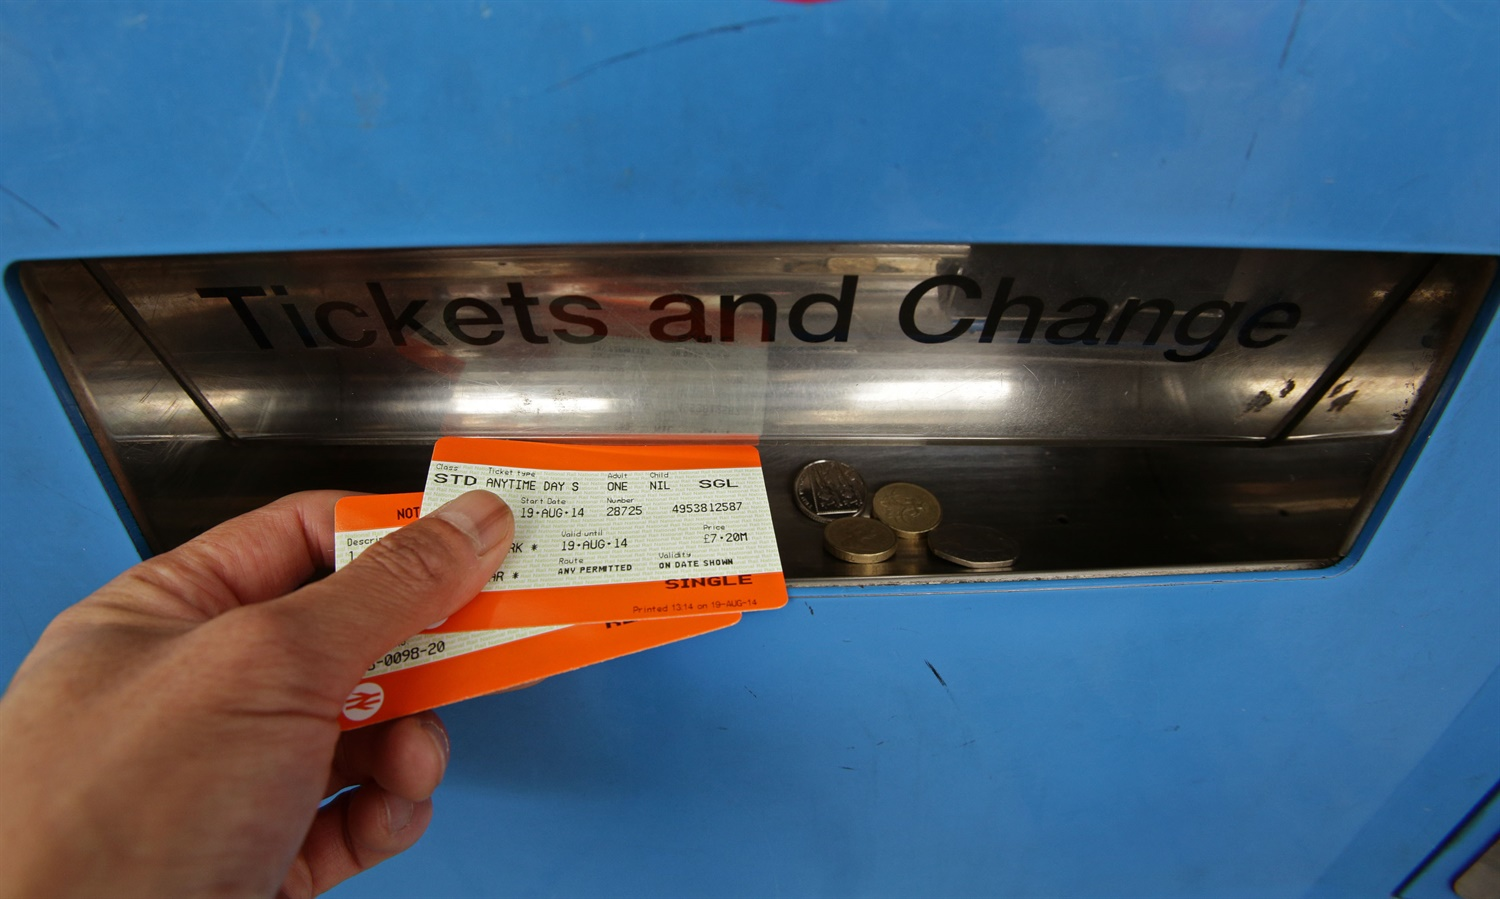 Controversial rail fare data